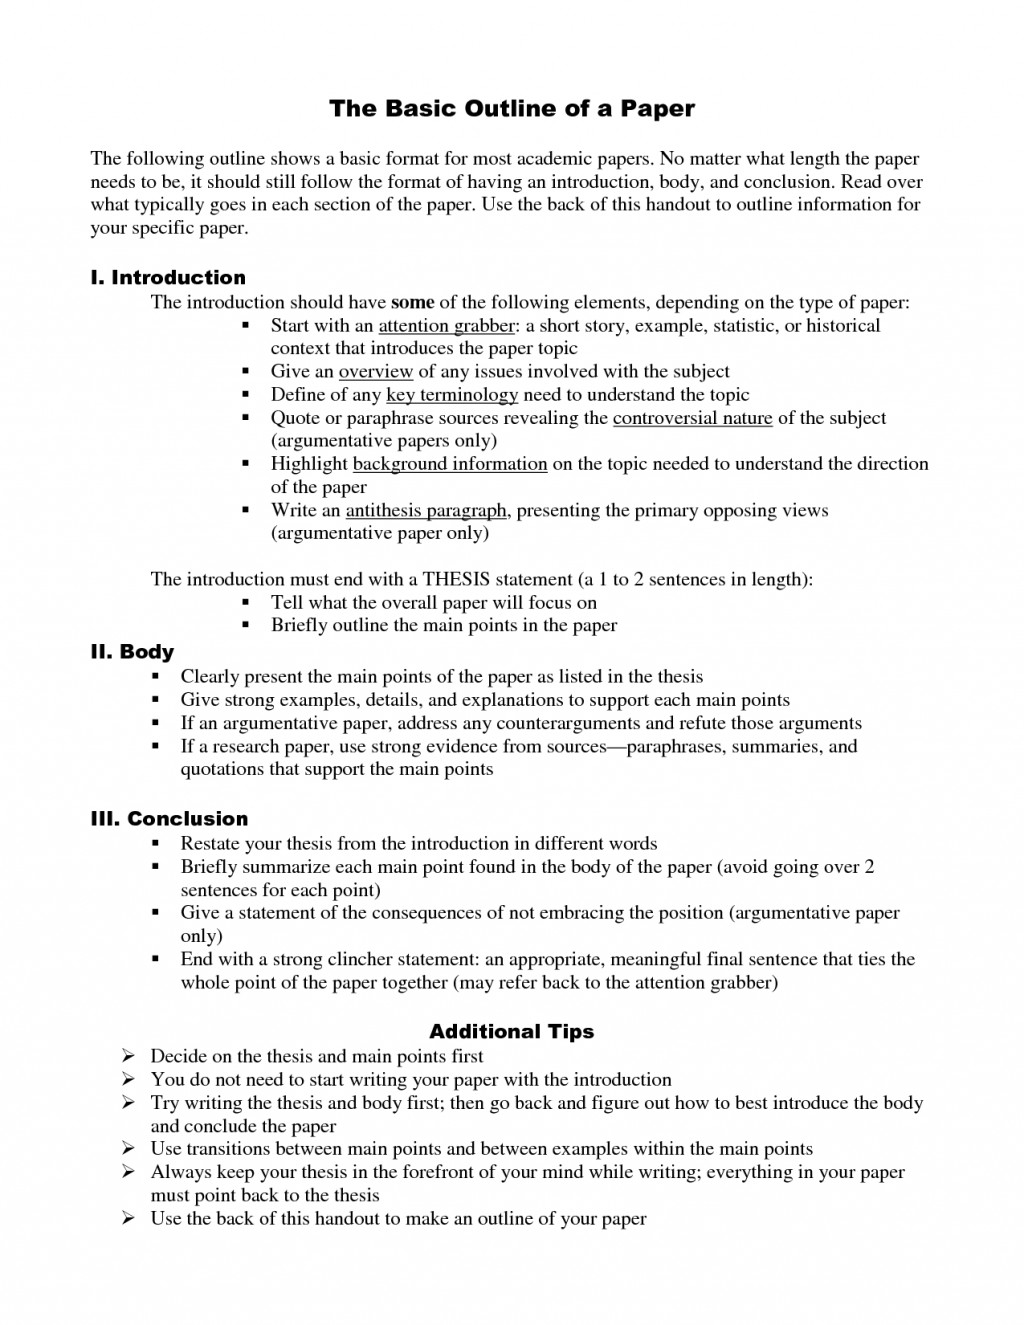 011 Paper Outline Research Template 7gkv1usl For Phenomenal A Mla How To Write An Ppt On Autism Large